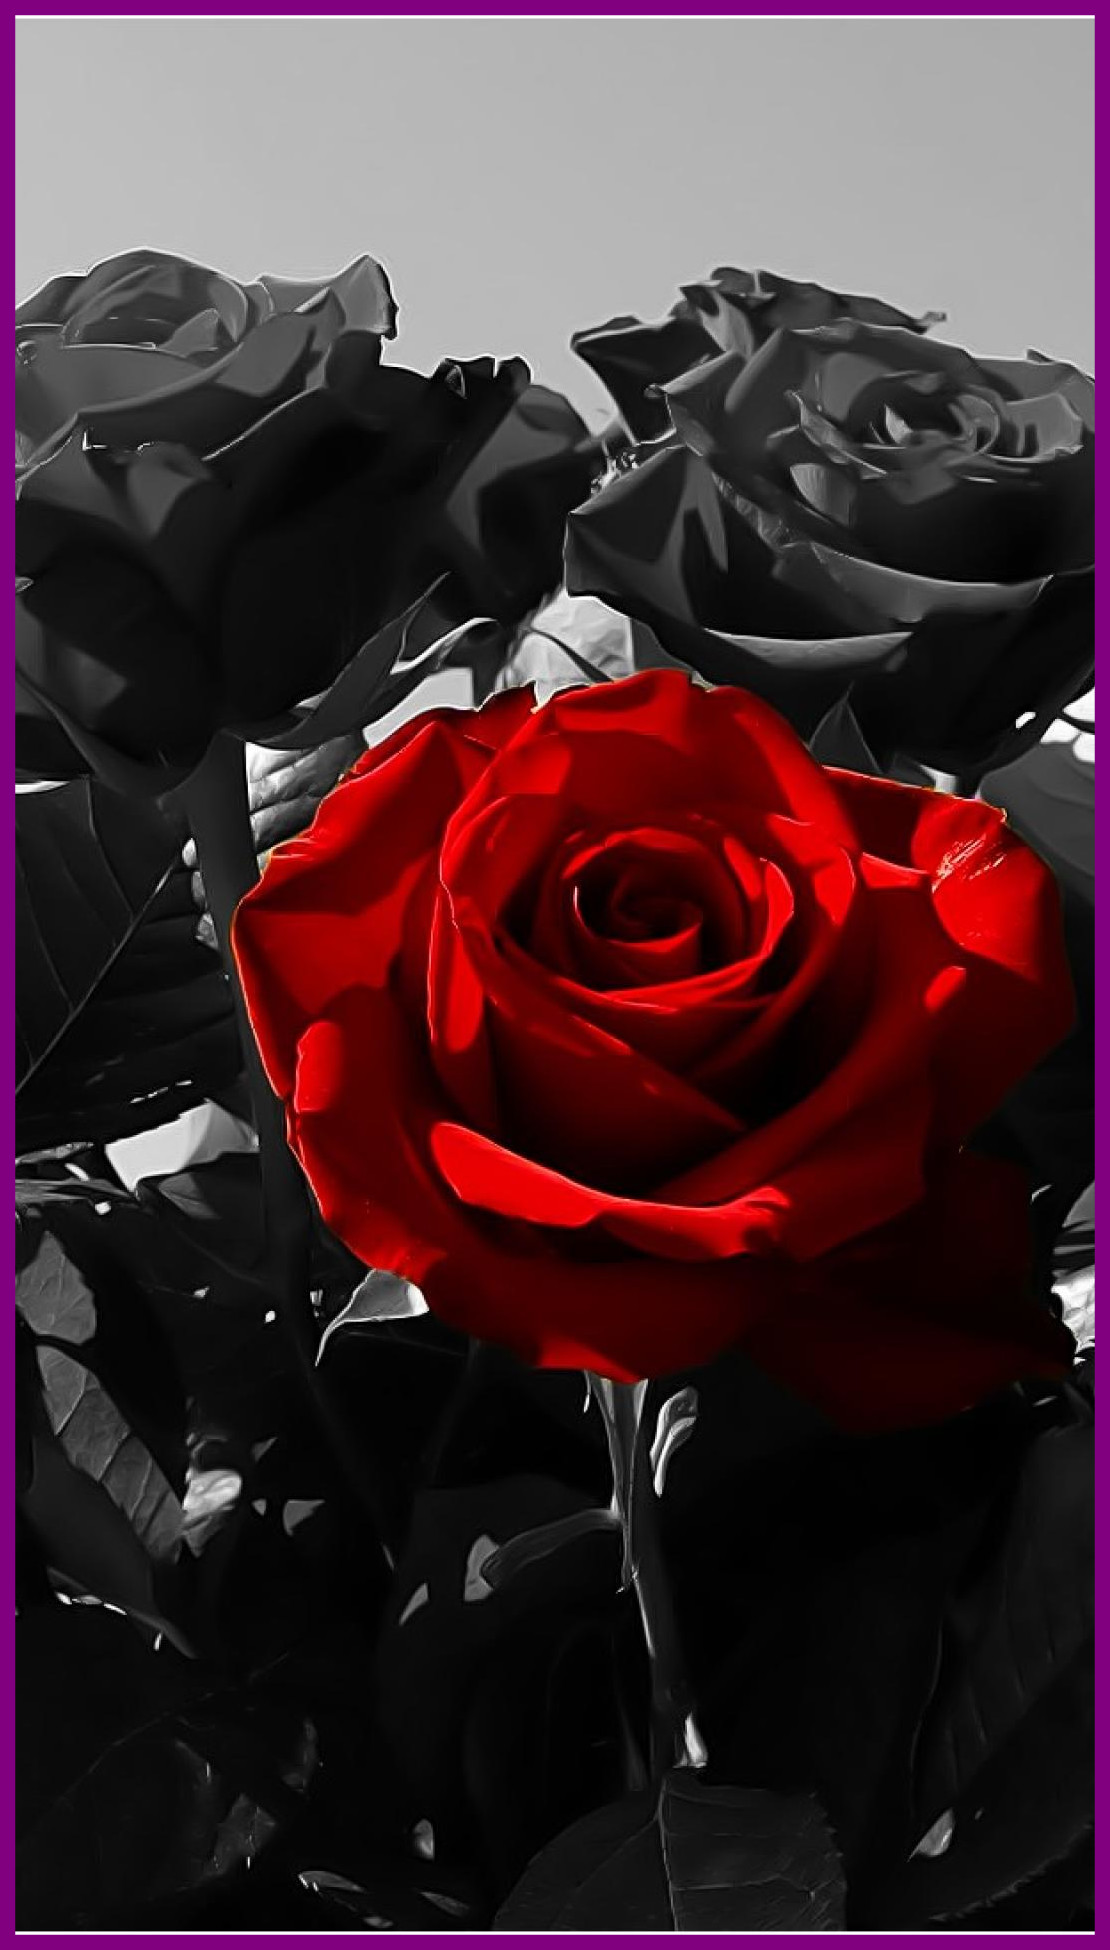 Black Red Rose Black Roses 1019220 Hd Wallpaper